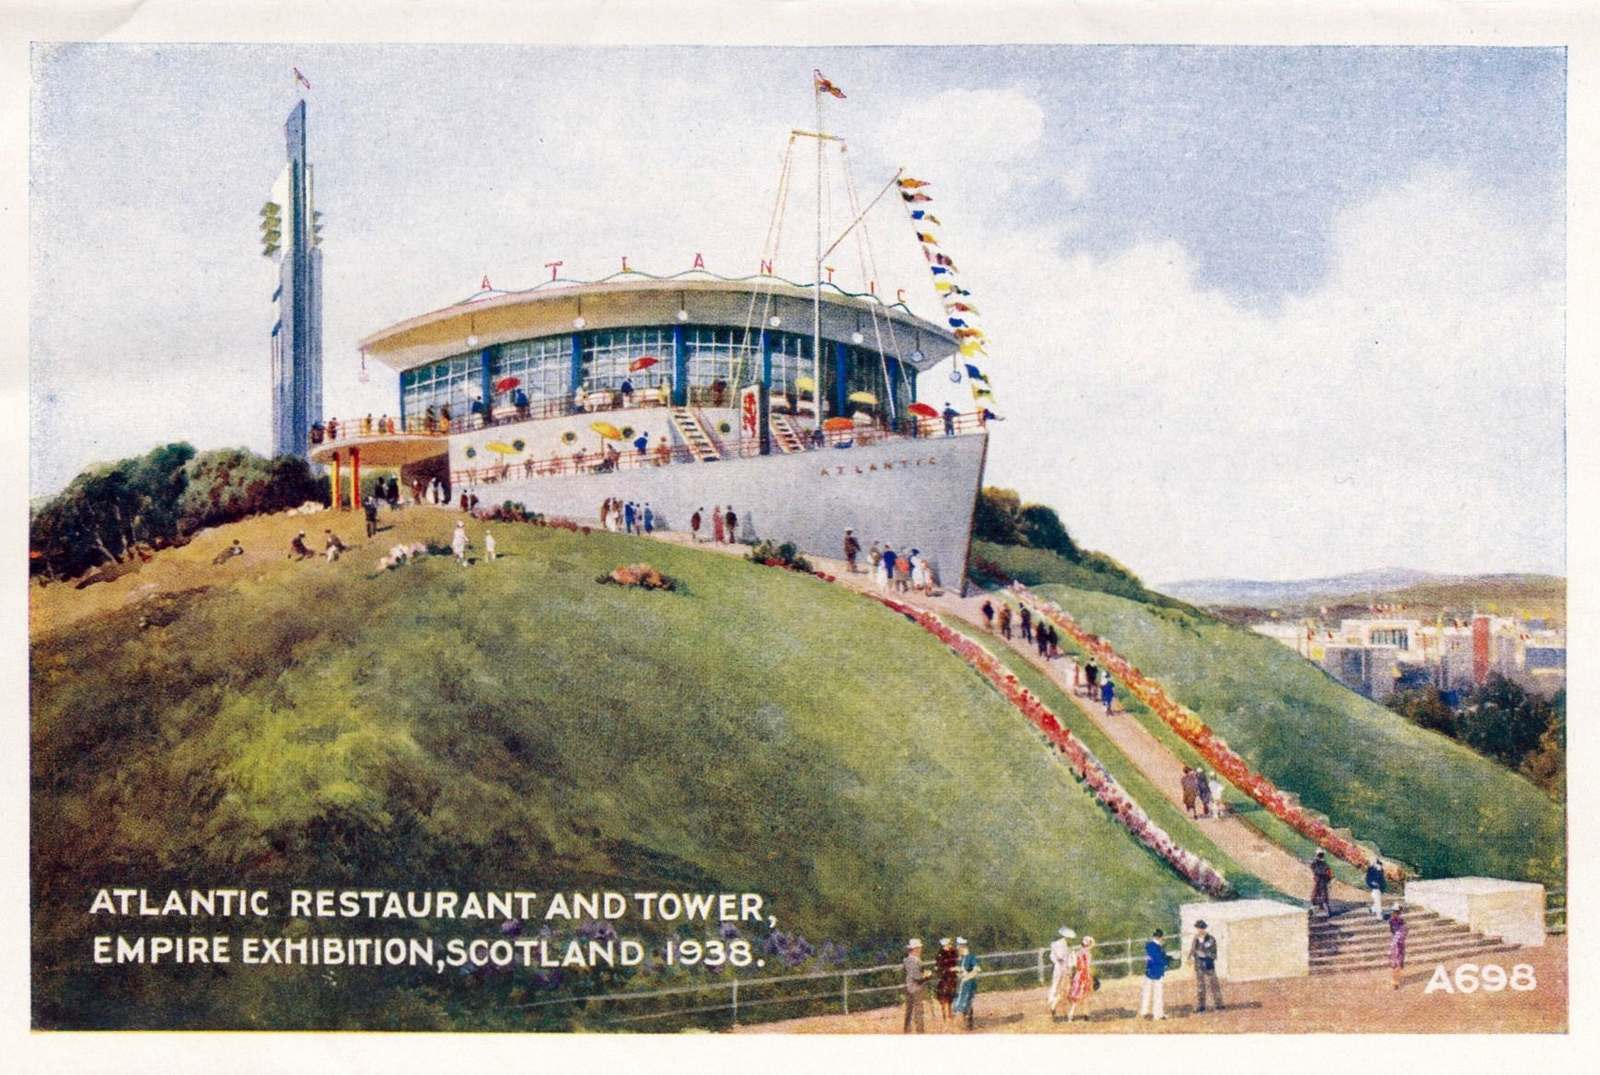 Atlantic Restaurant and Tower